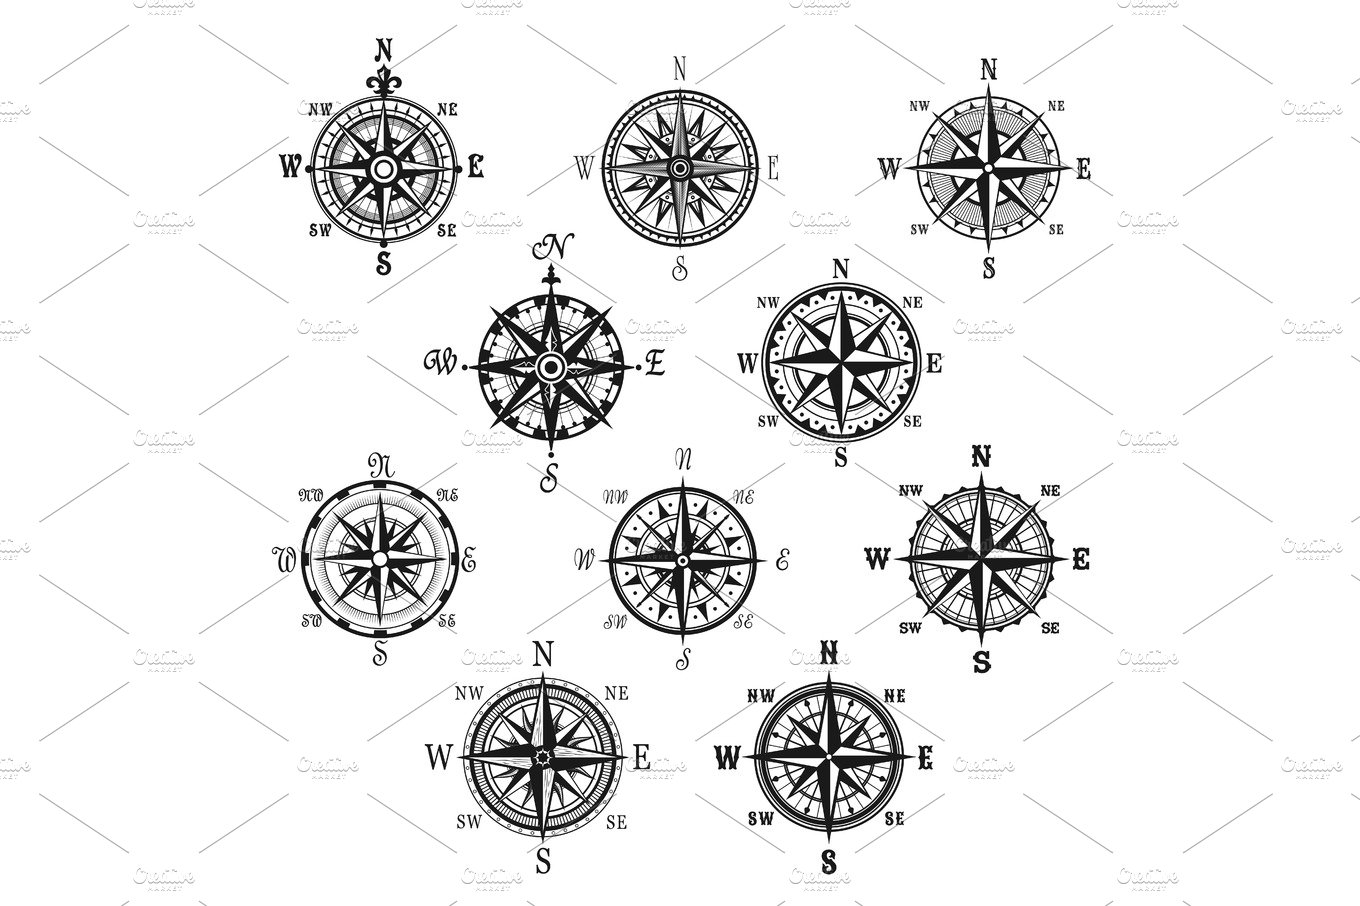 Vintage compass and wind rose isolated symbol set illustrations vintage compass and wind rose isolated symbol set illustrations creative market buycottarizona Image collections